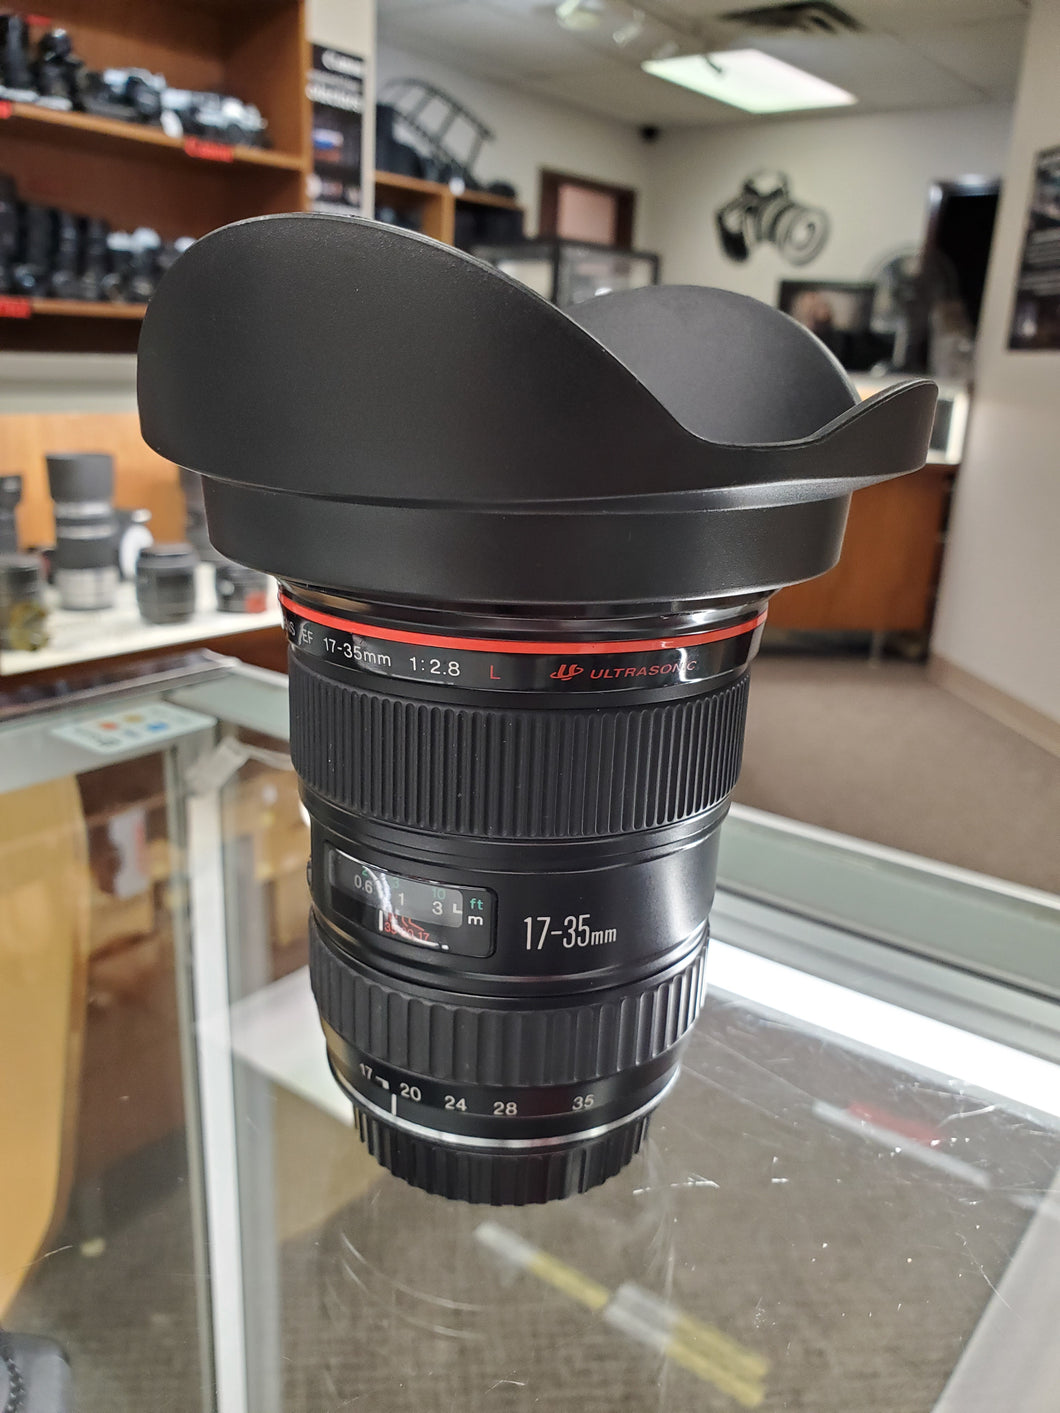 Canon EF 17-35mm F/2.8 L USM Lens - Pro Full Frame - Condition 10/10 - Paramount Camera & Repair - Saskatoon Canada Used Cameras Used Lenses Batteries Grips Chargers Studio